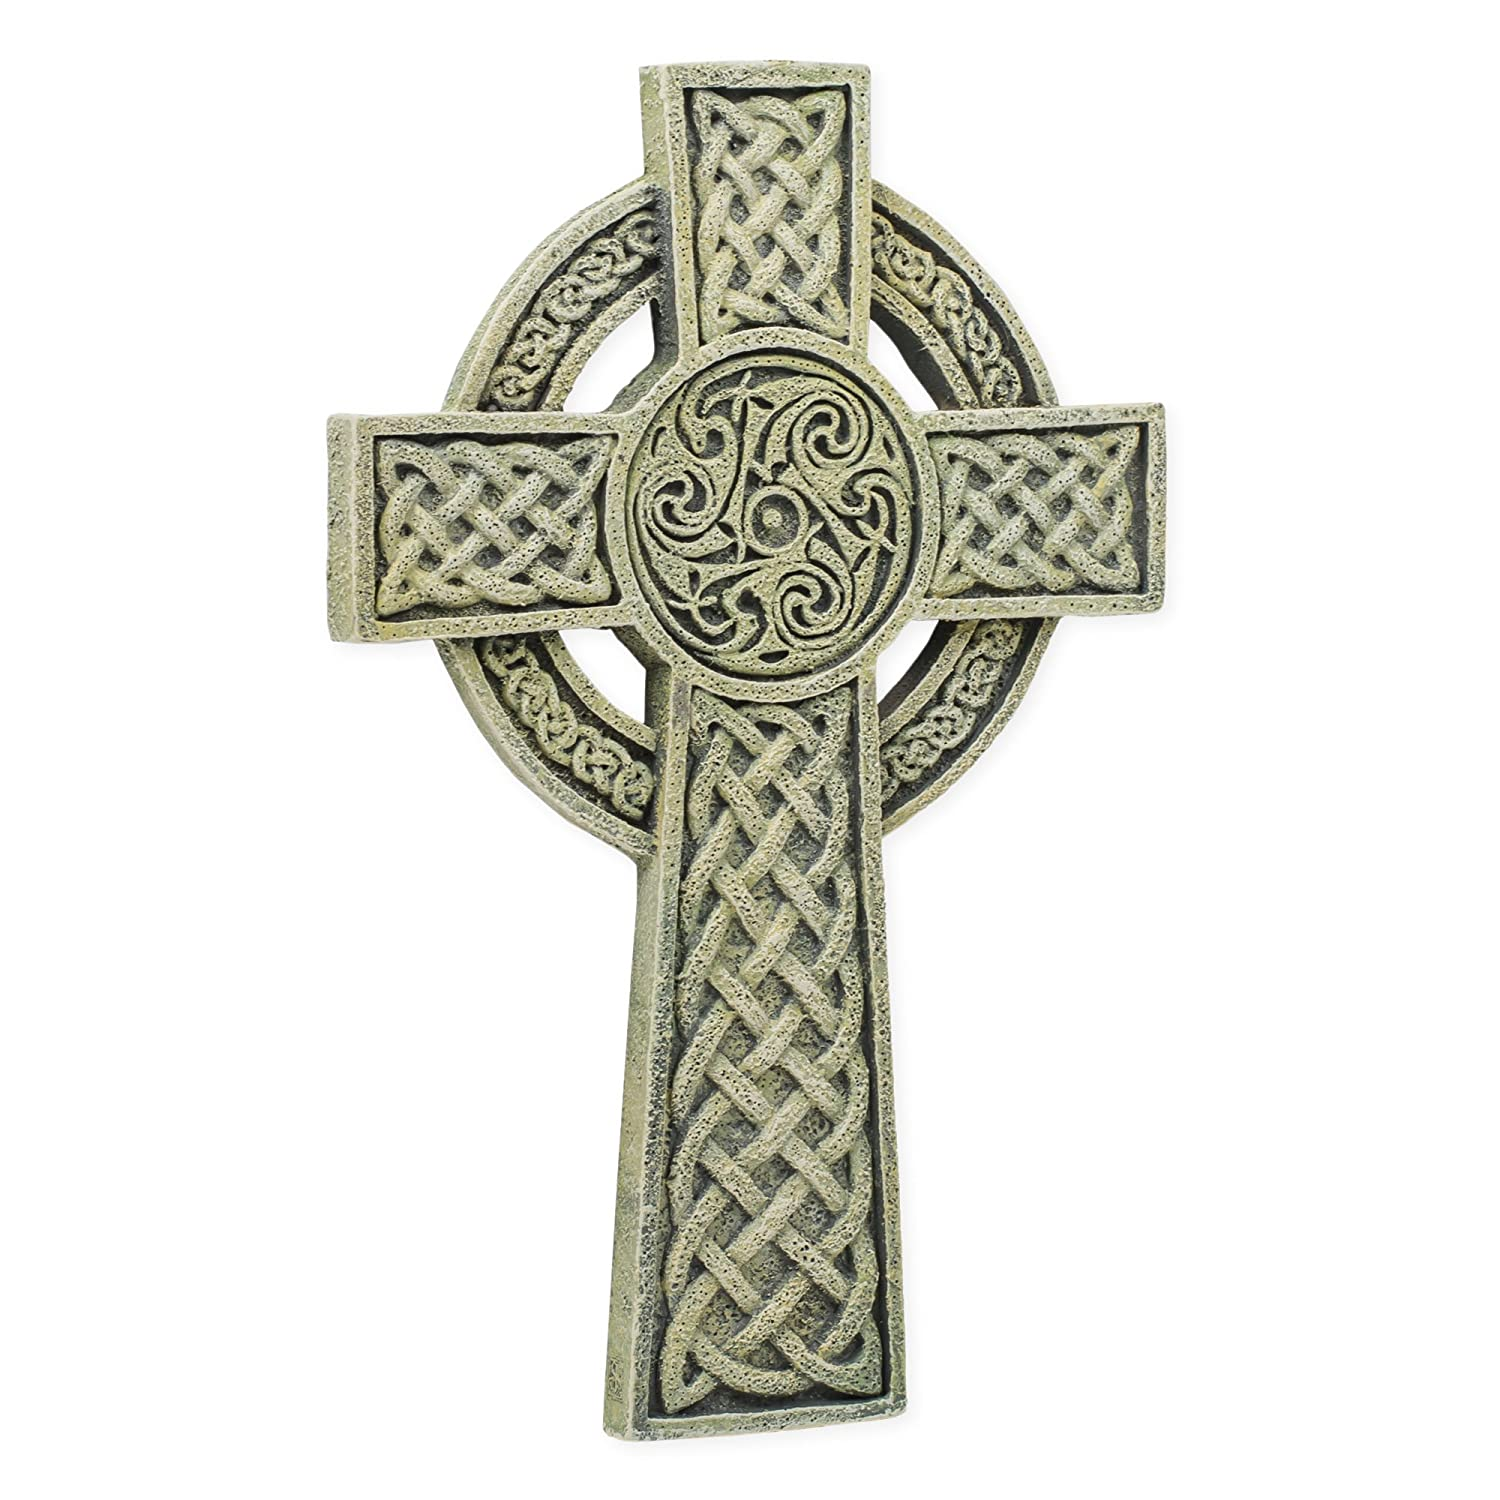 Roman Celtic Irish Wall Cross 9 inch Joseph Studio by